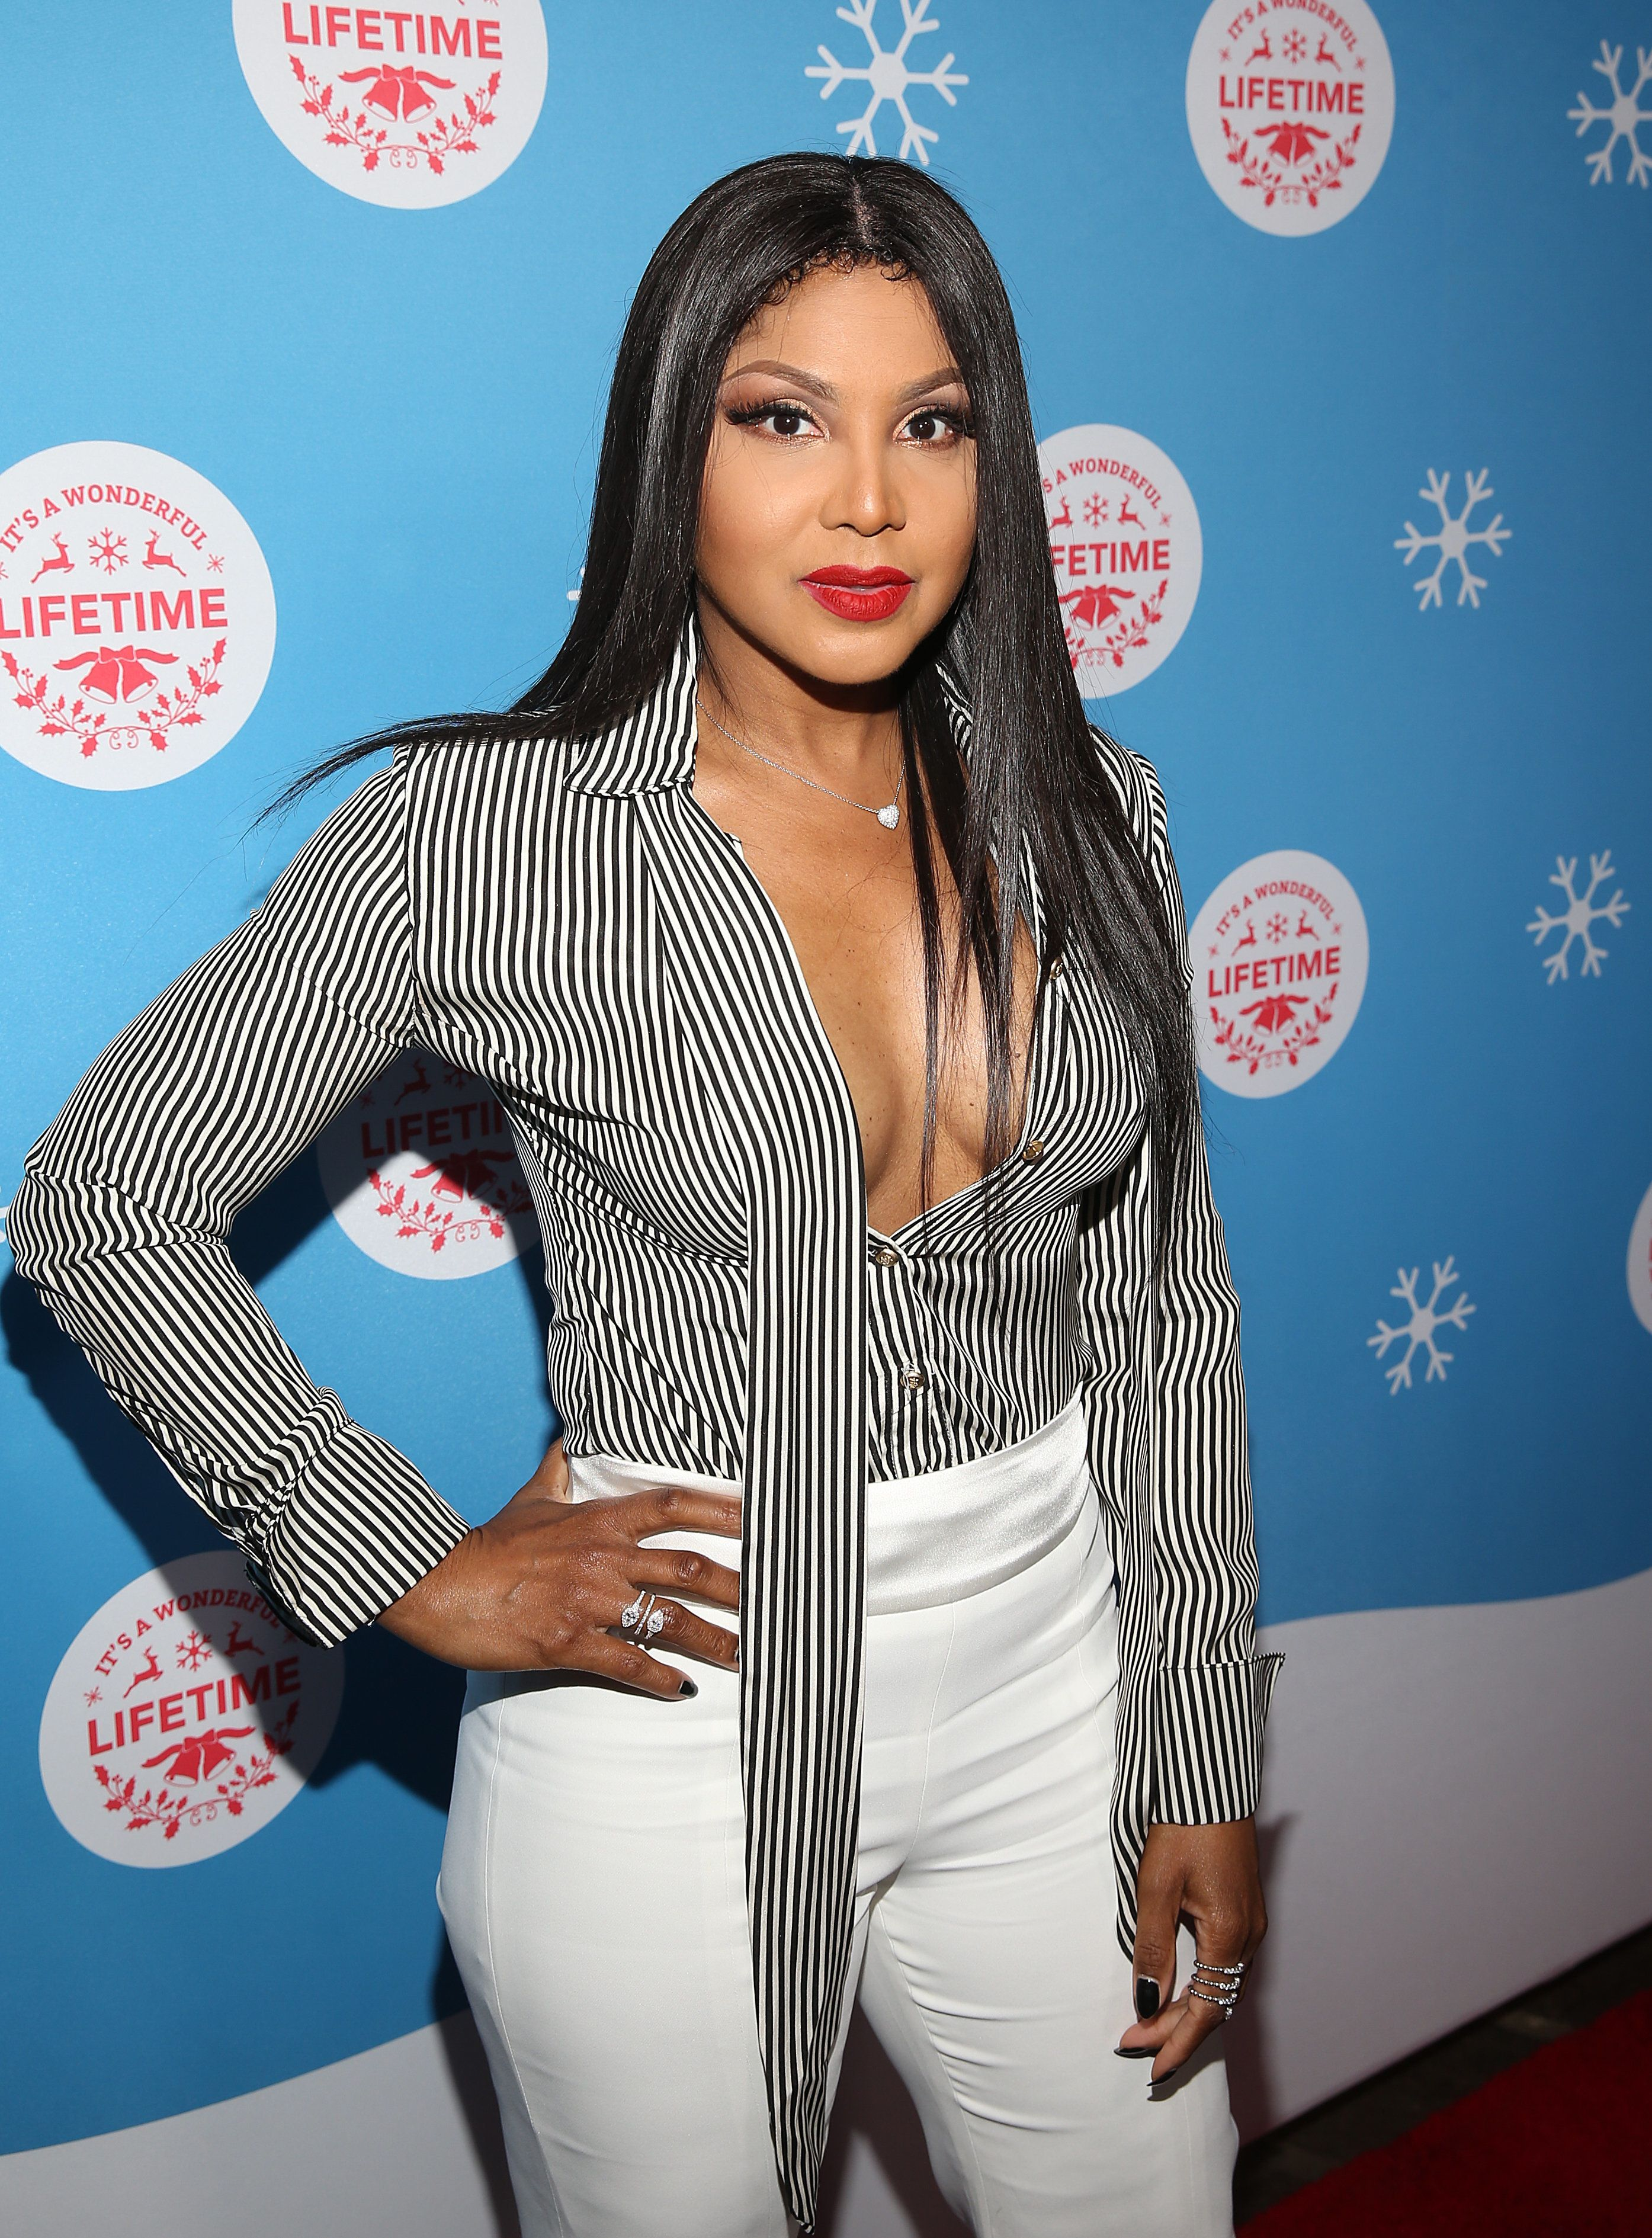 """LOS ANGELES, CALIFORNIA - NOVEMBER 14: Toni Braxton attends the VIP opening night of the life-sized gingerbread house in celebration of """"It's A Wonderful Lifetime' at The Grove on November 14, 2018 in Los Angeles, California. (Photo by Jesse Grant/Getty Images for Lifetime )"""